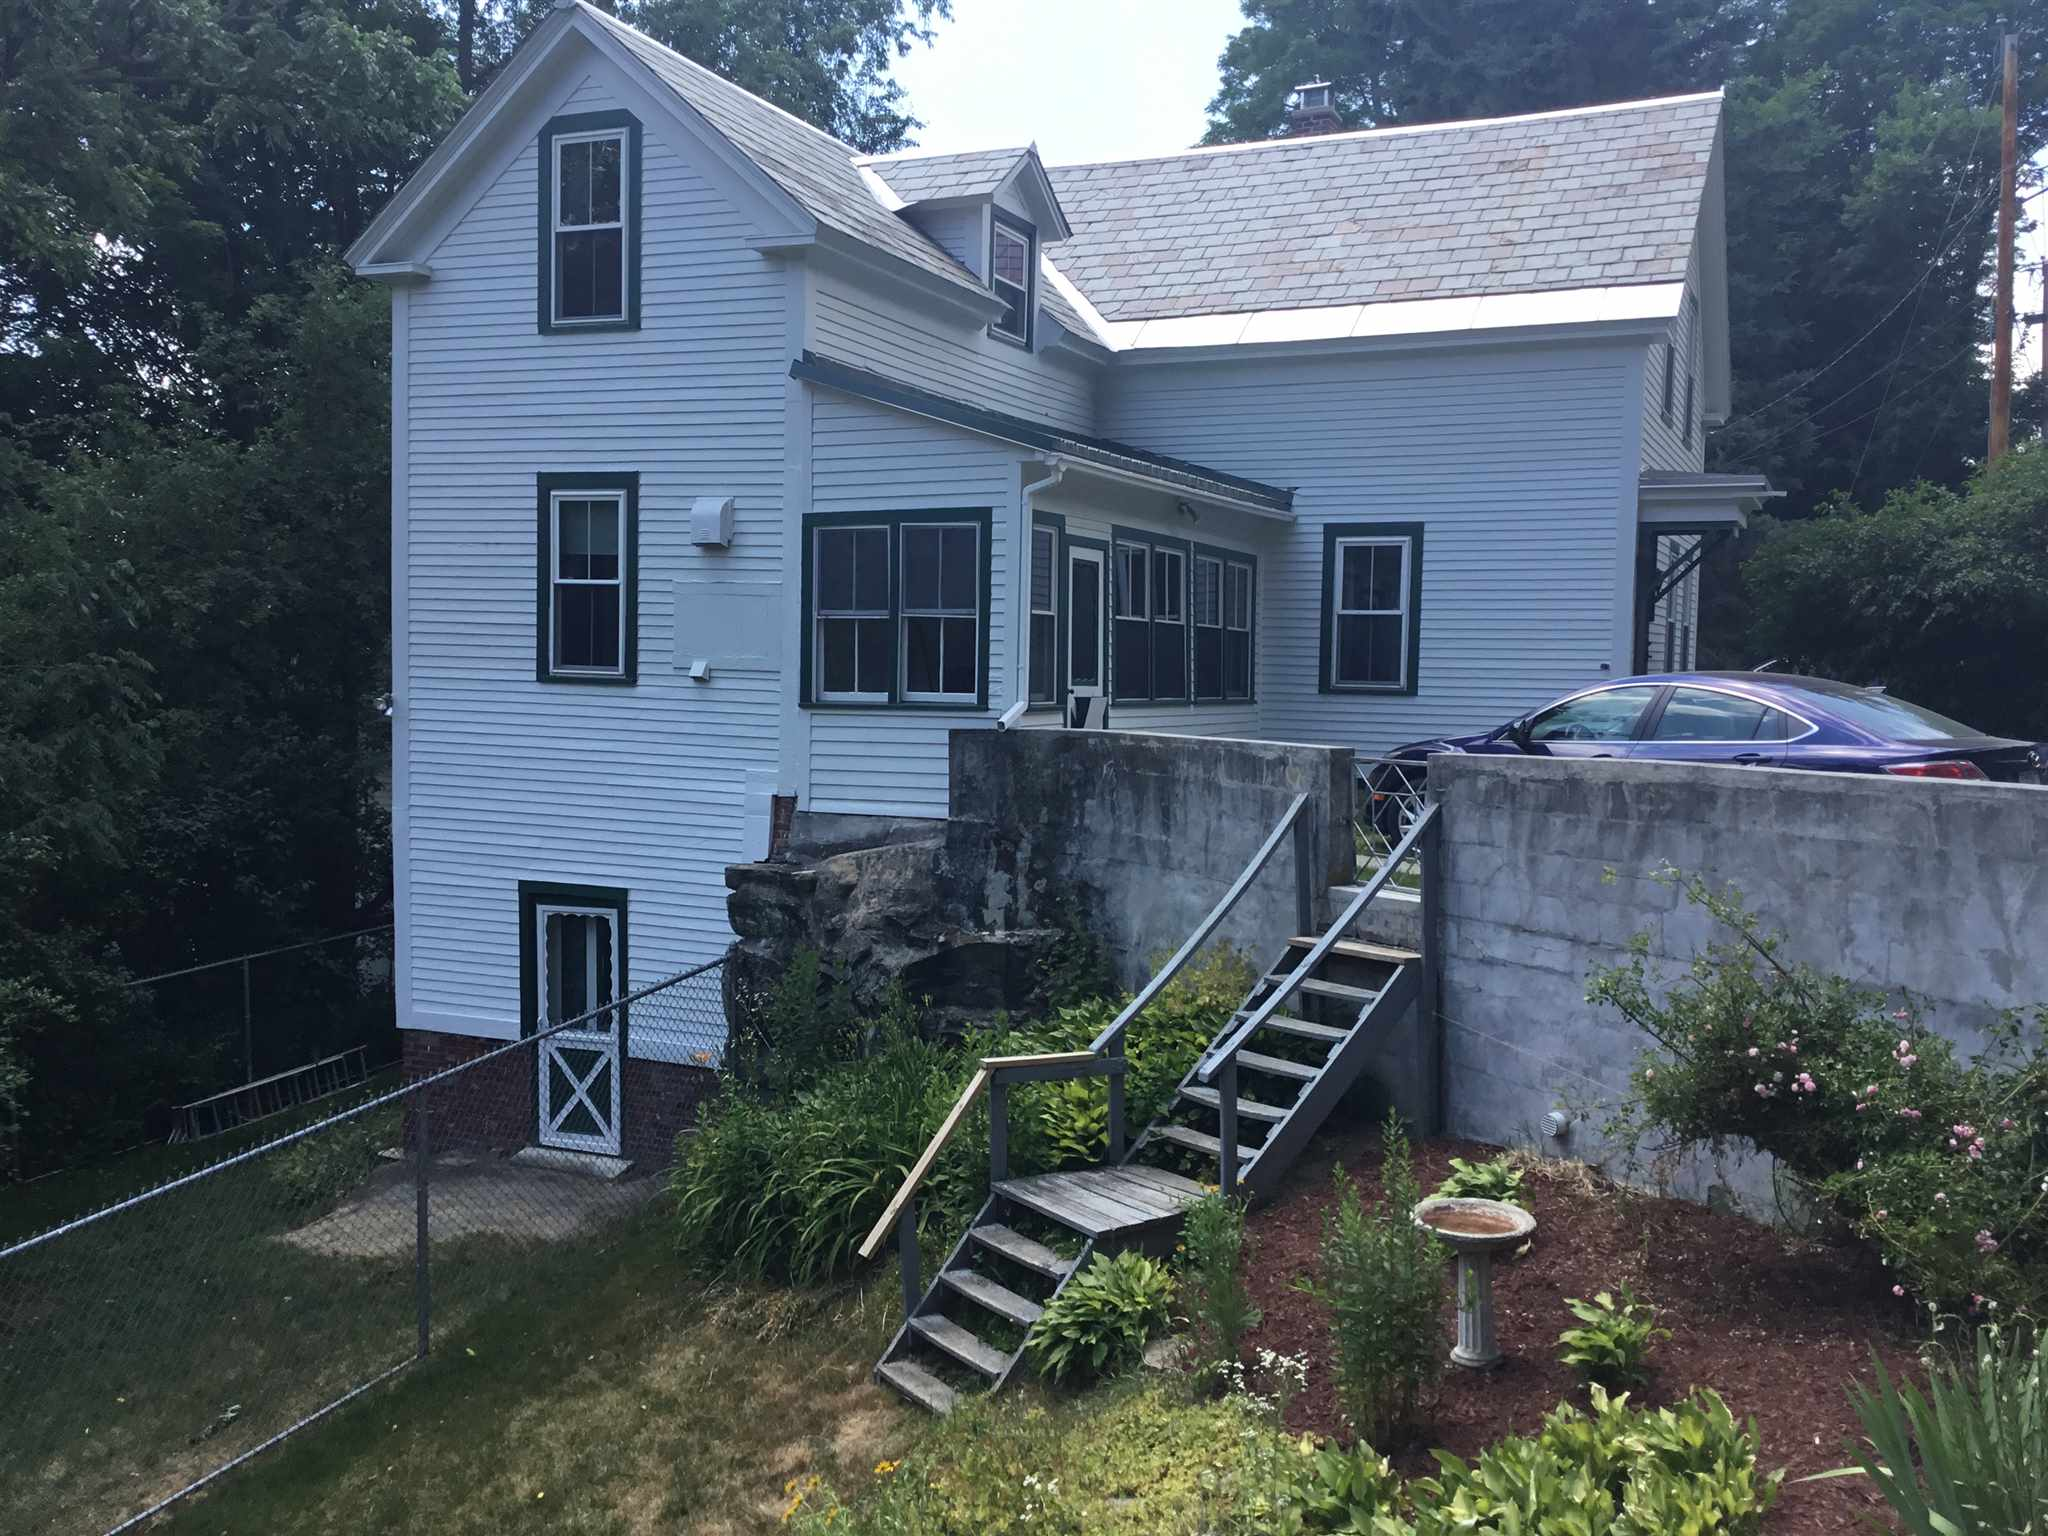 MLS 4812721: 108 Highland Avenue, Hinsdale NH